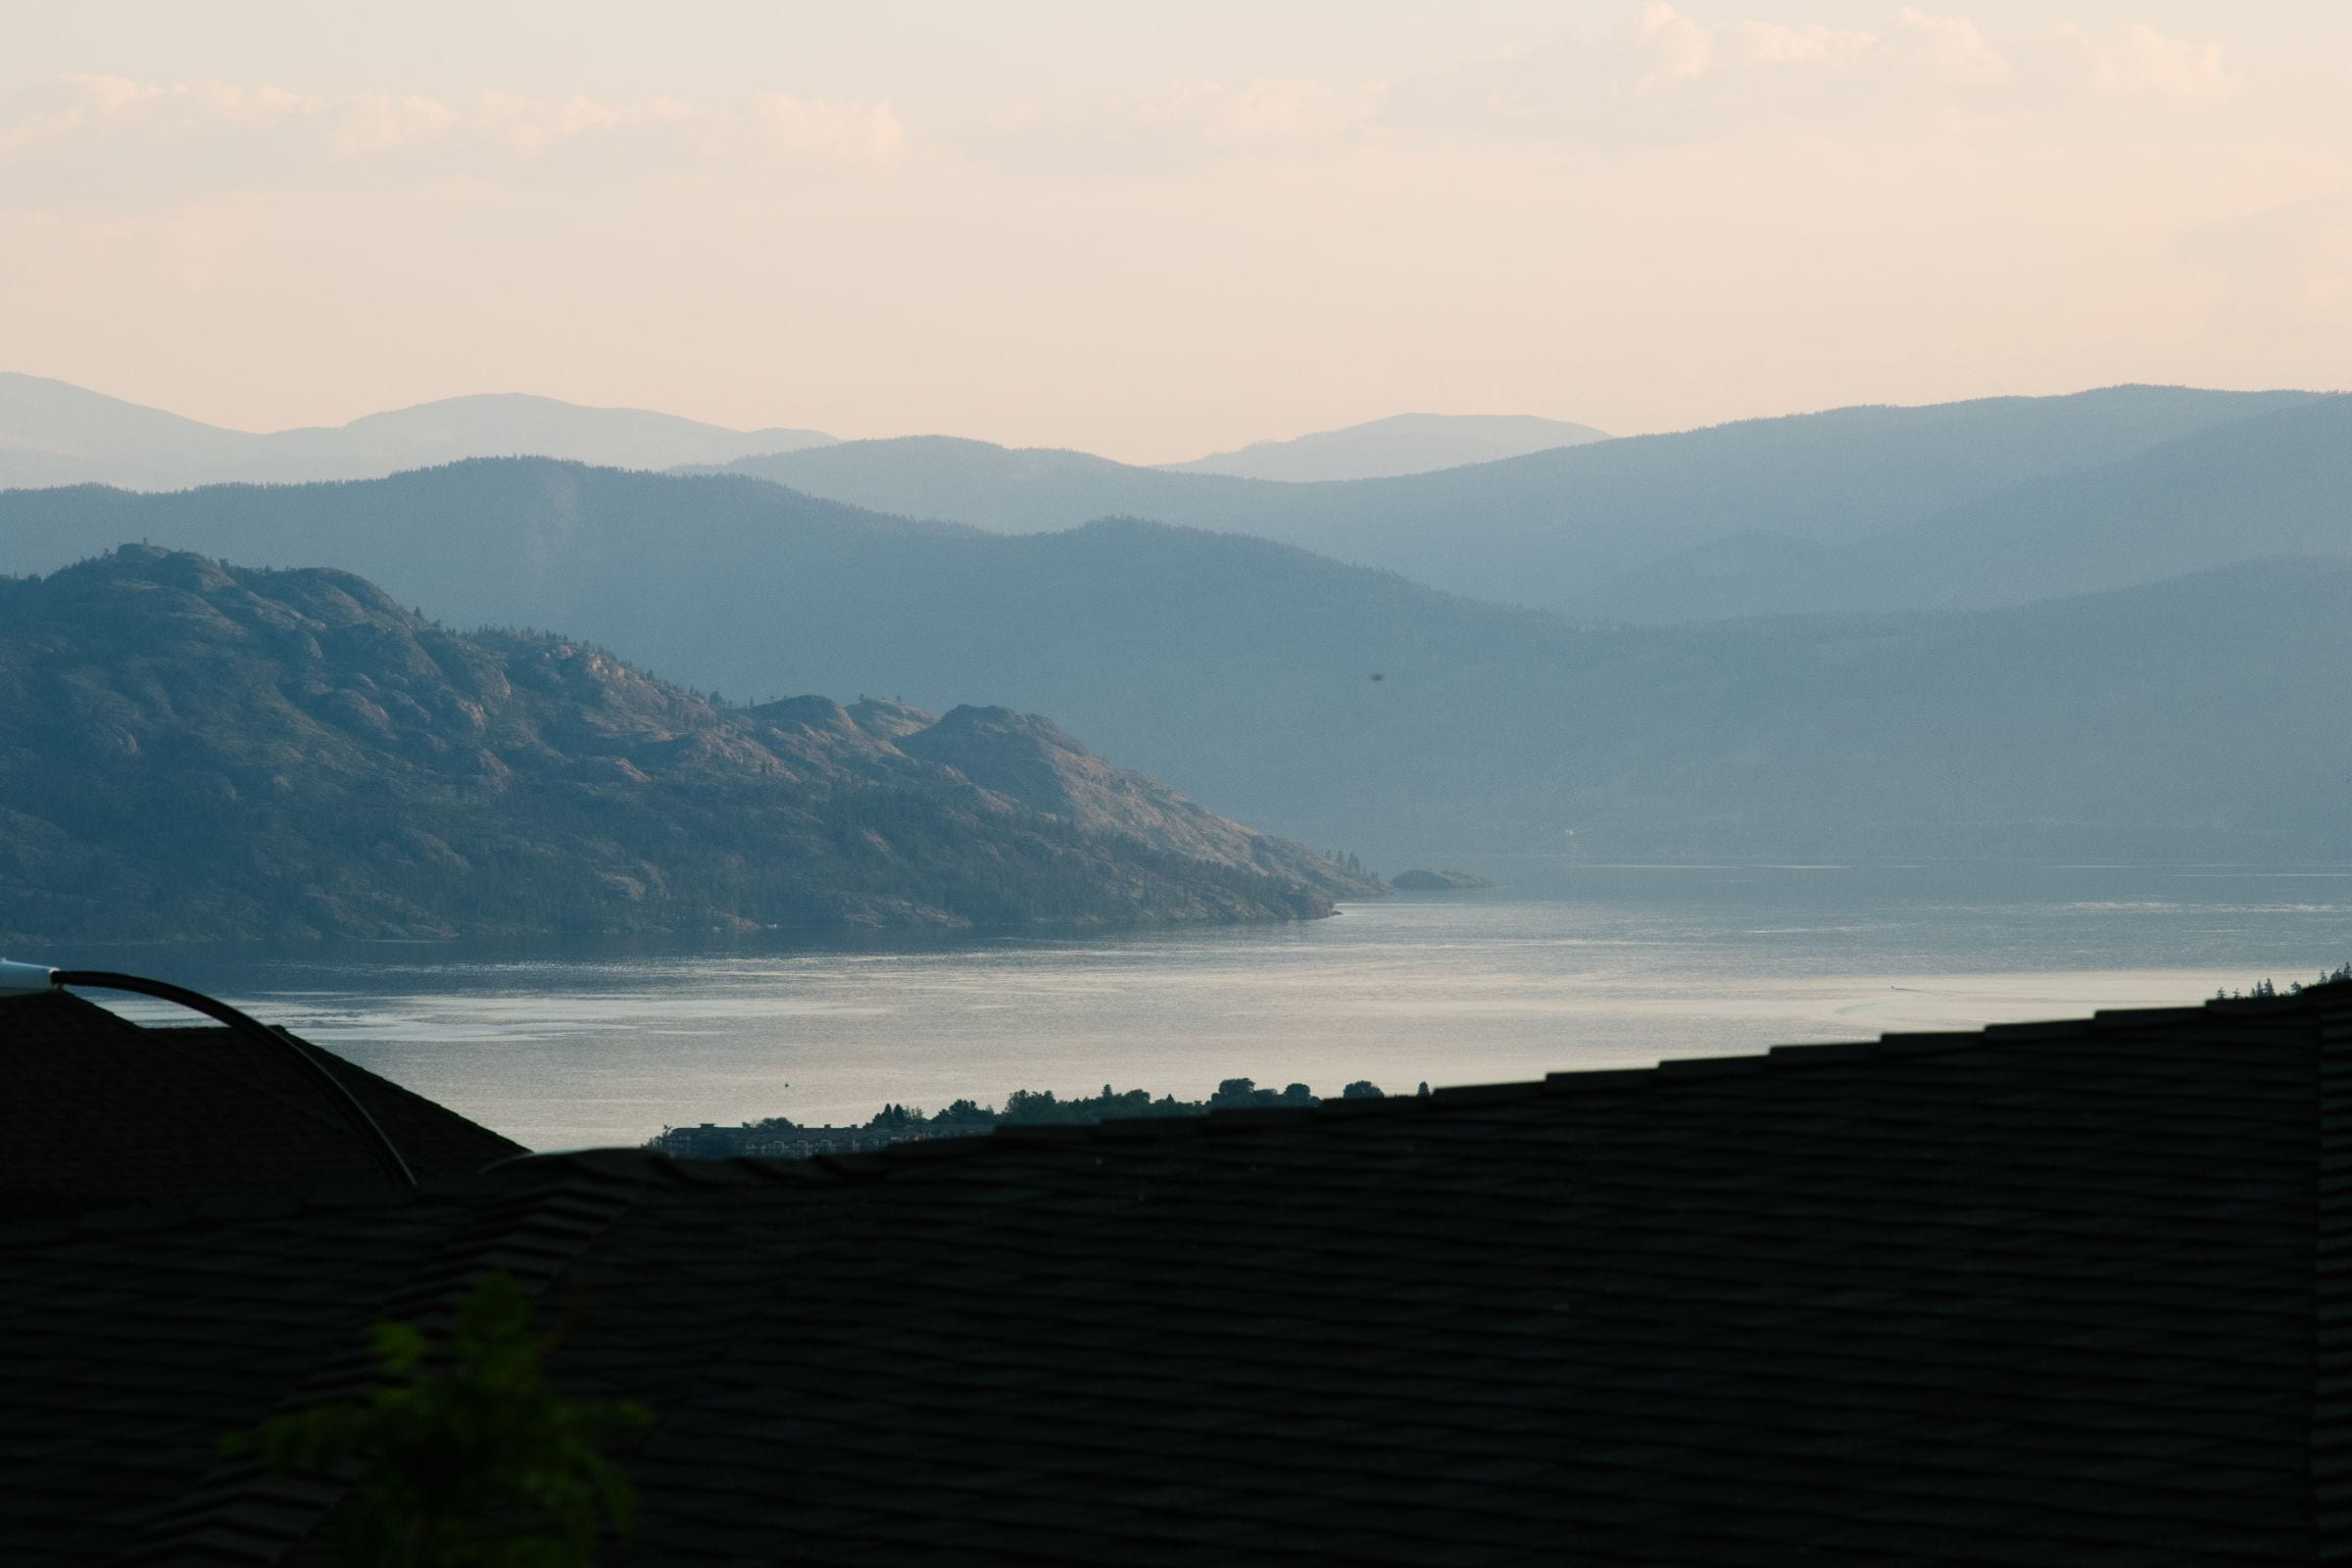 view of a rooftop with the Okanagan lake and hills in the background